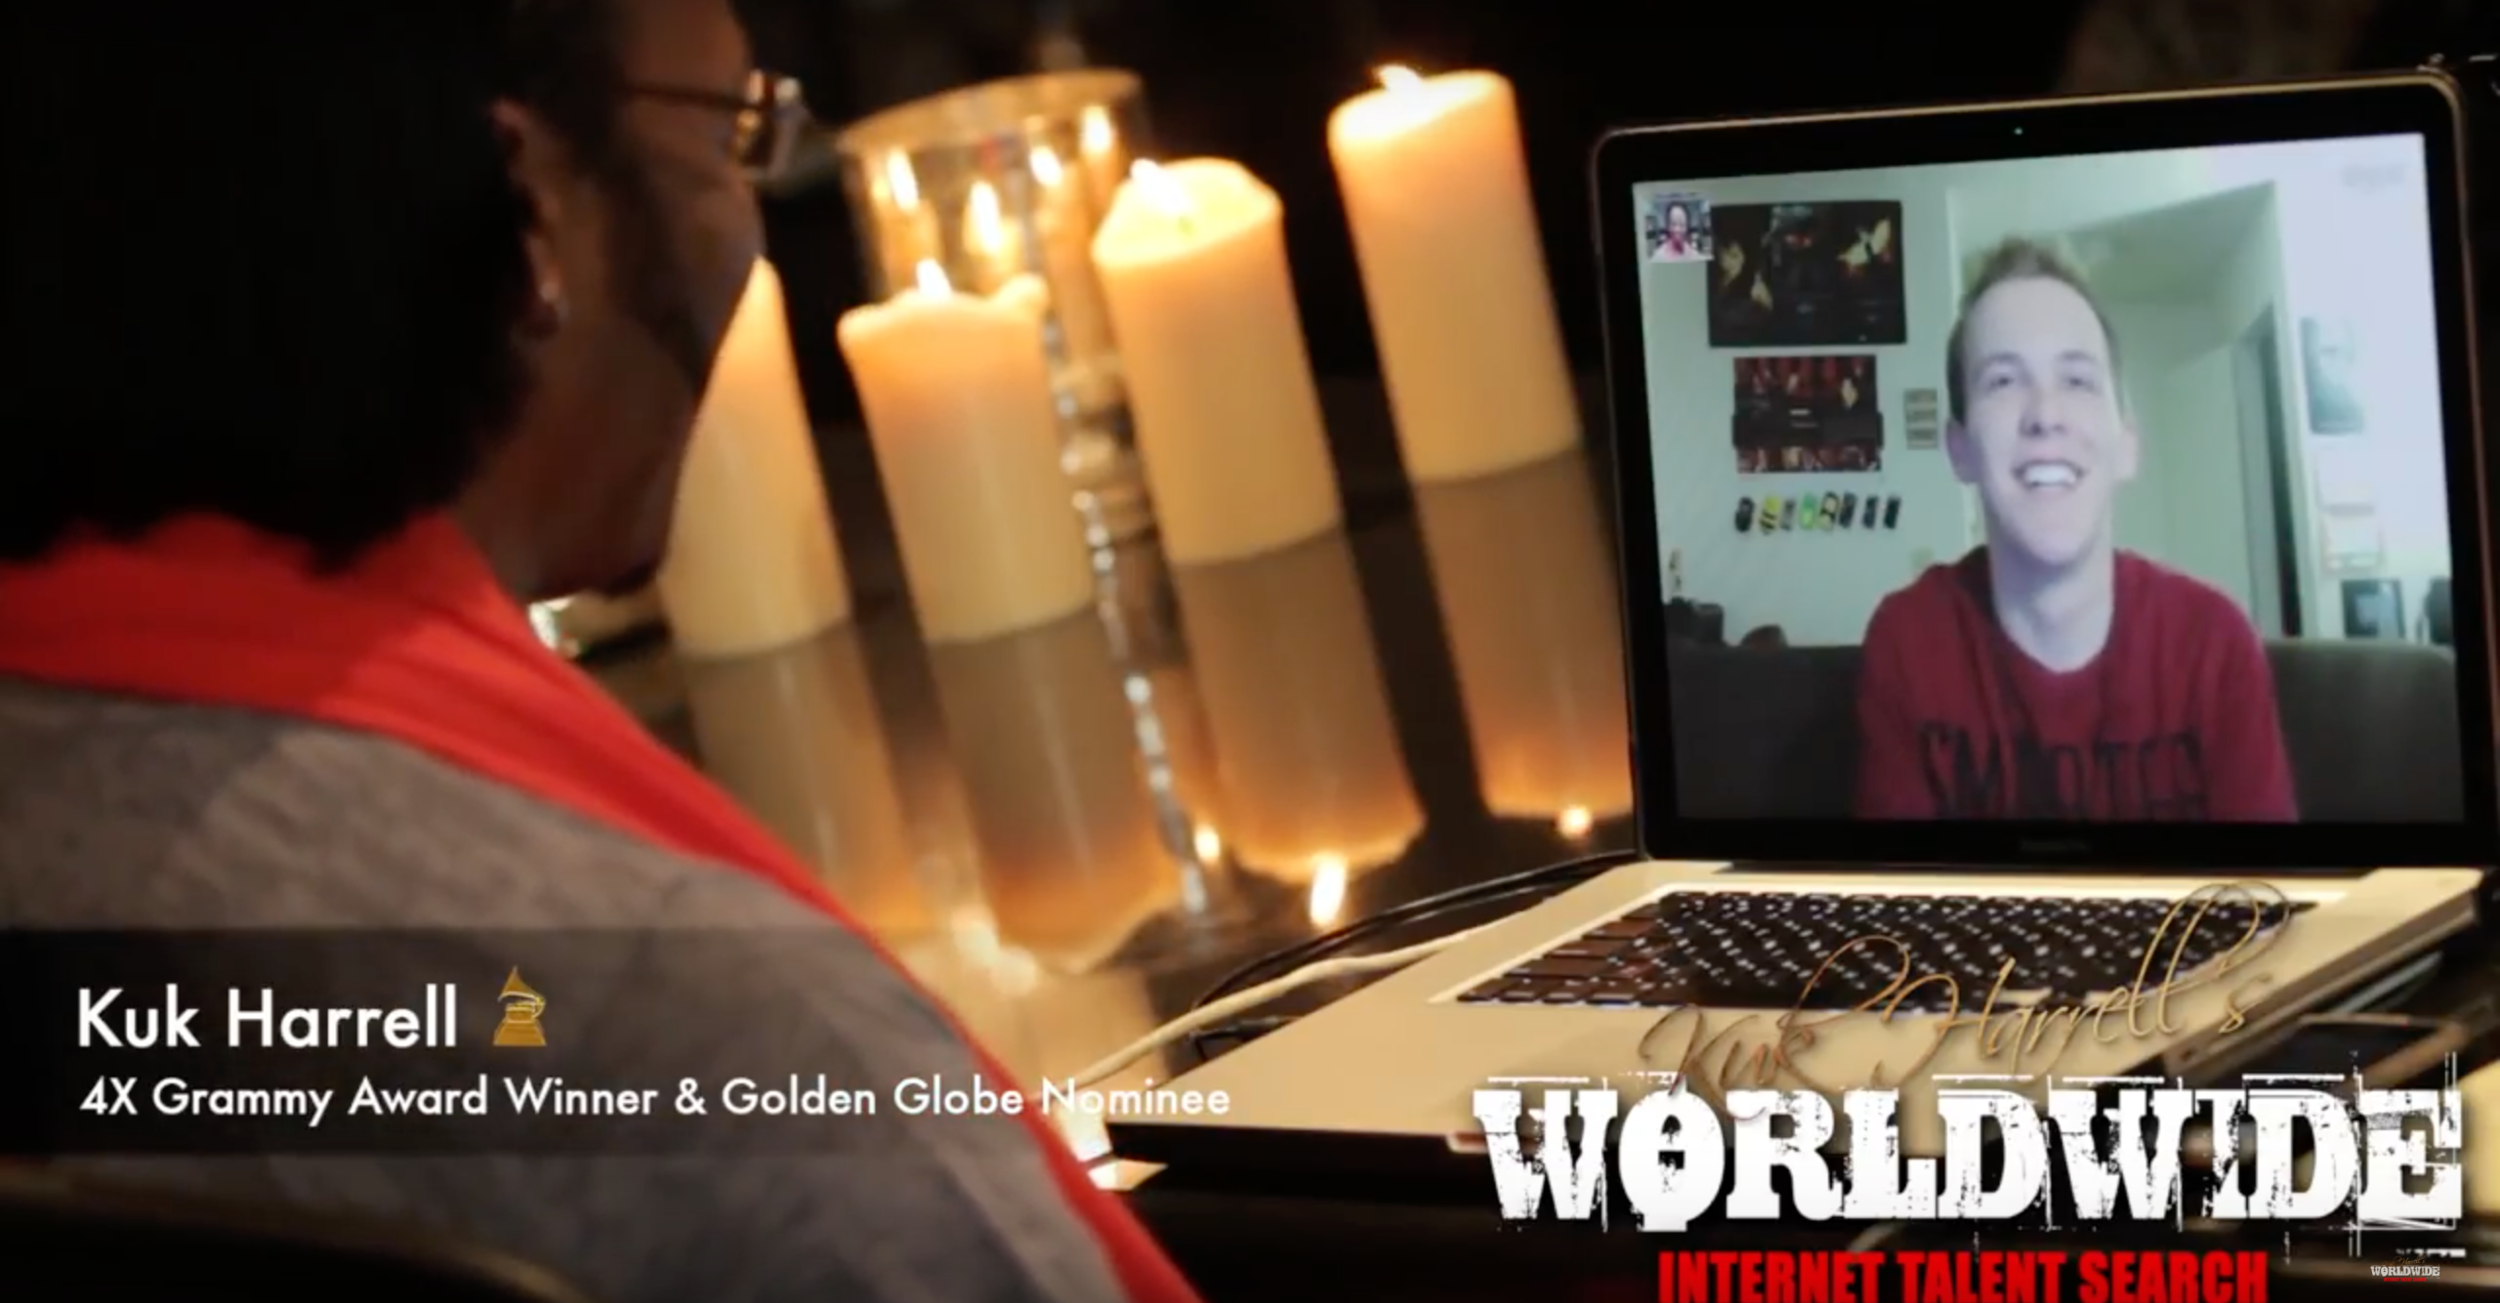 Video Conference & Voice Lesson with Kuk Harrell